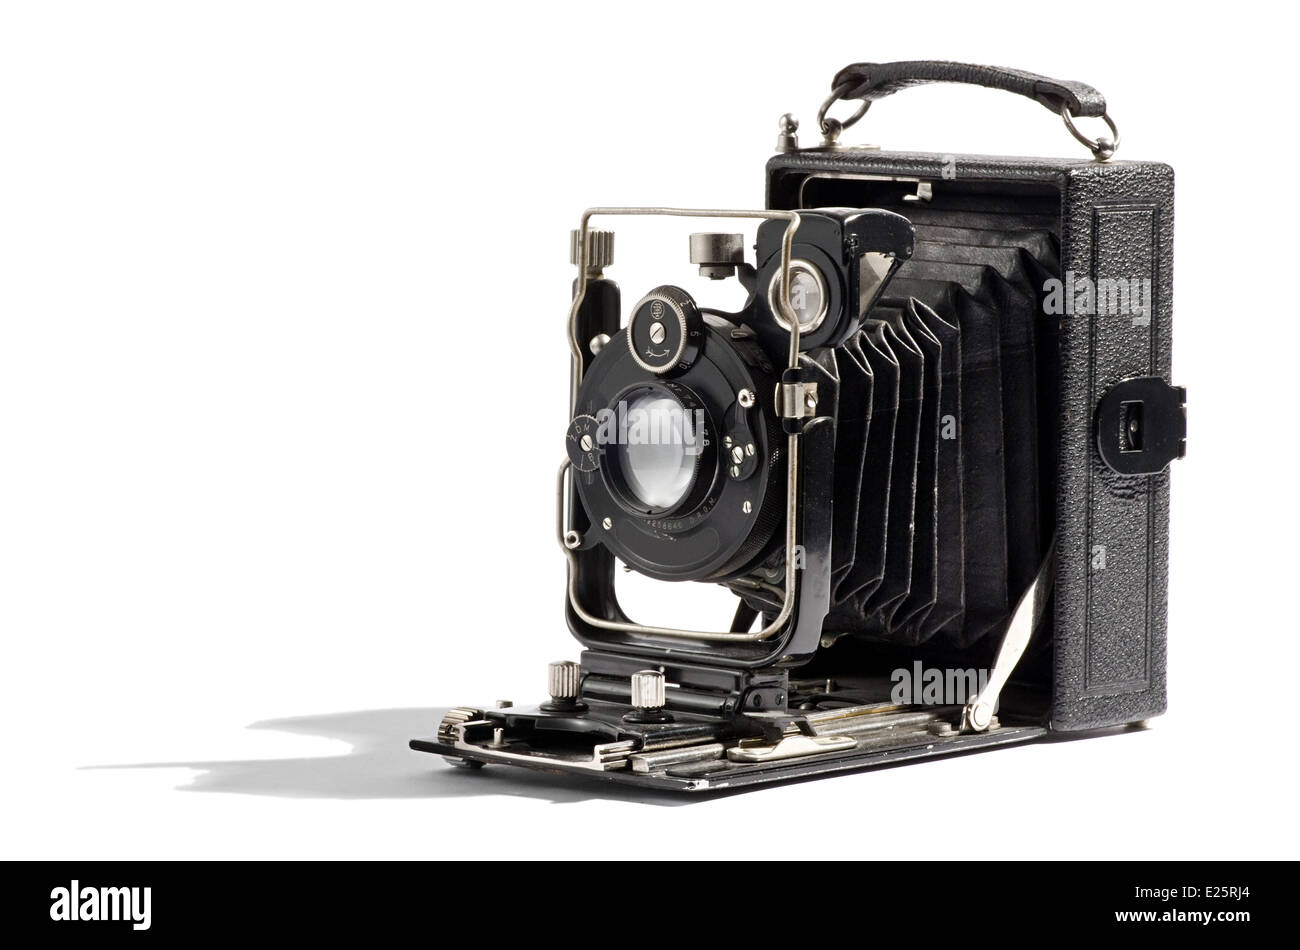 Old vintage bellows camera - Stock Image